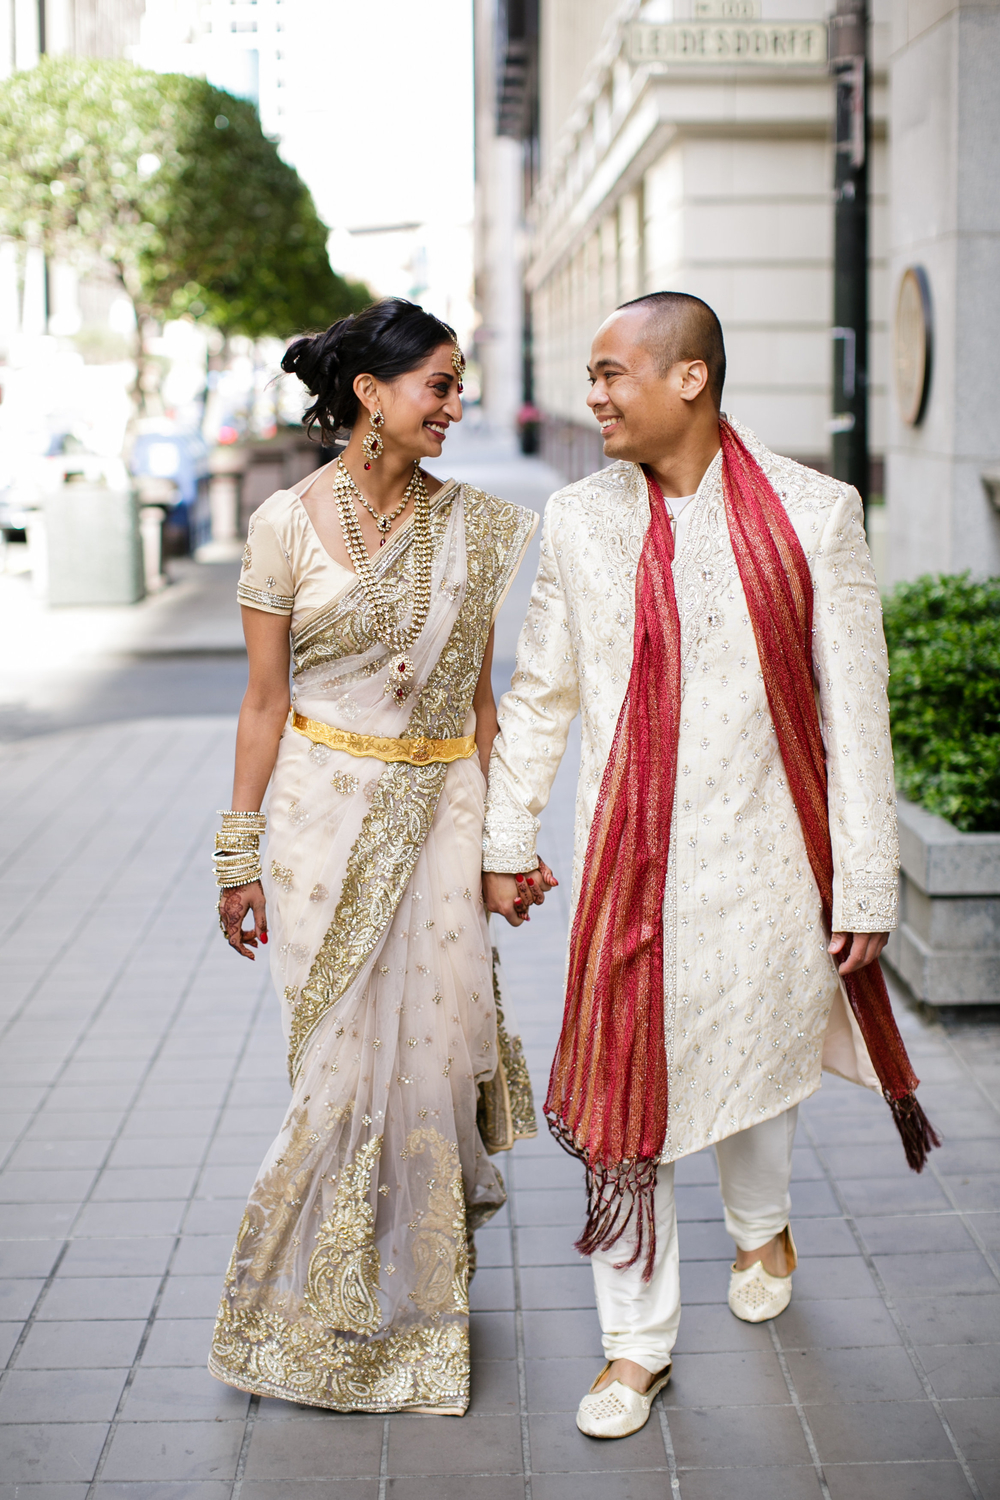 AnaisEvents_JihanCerdaPhotography_Priya-and-Jason - 051.jpg